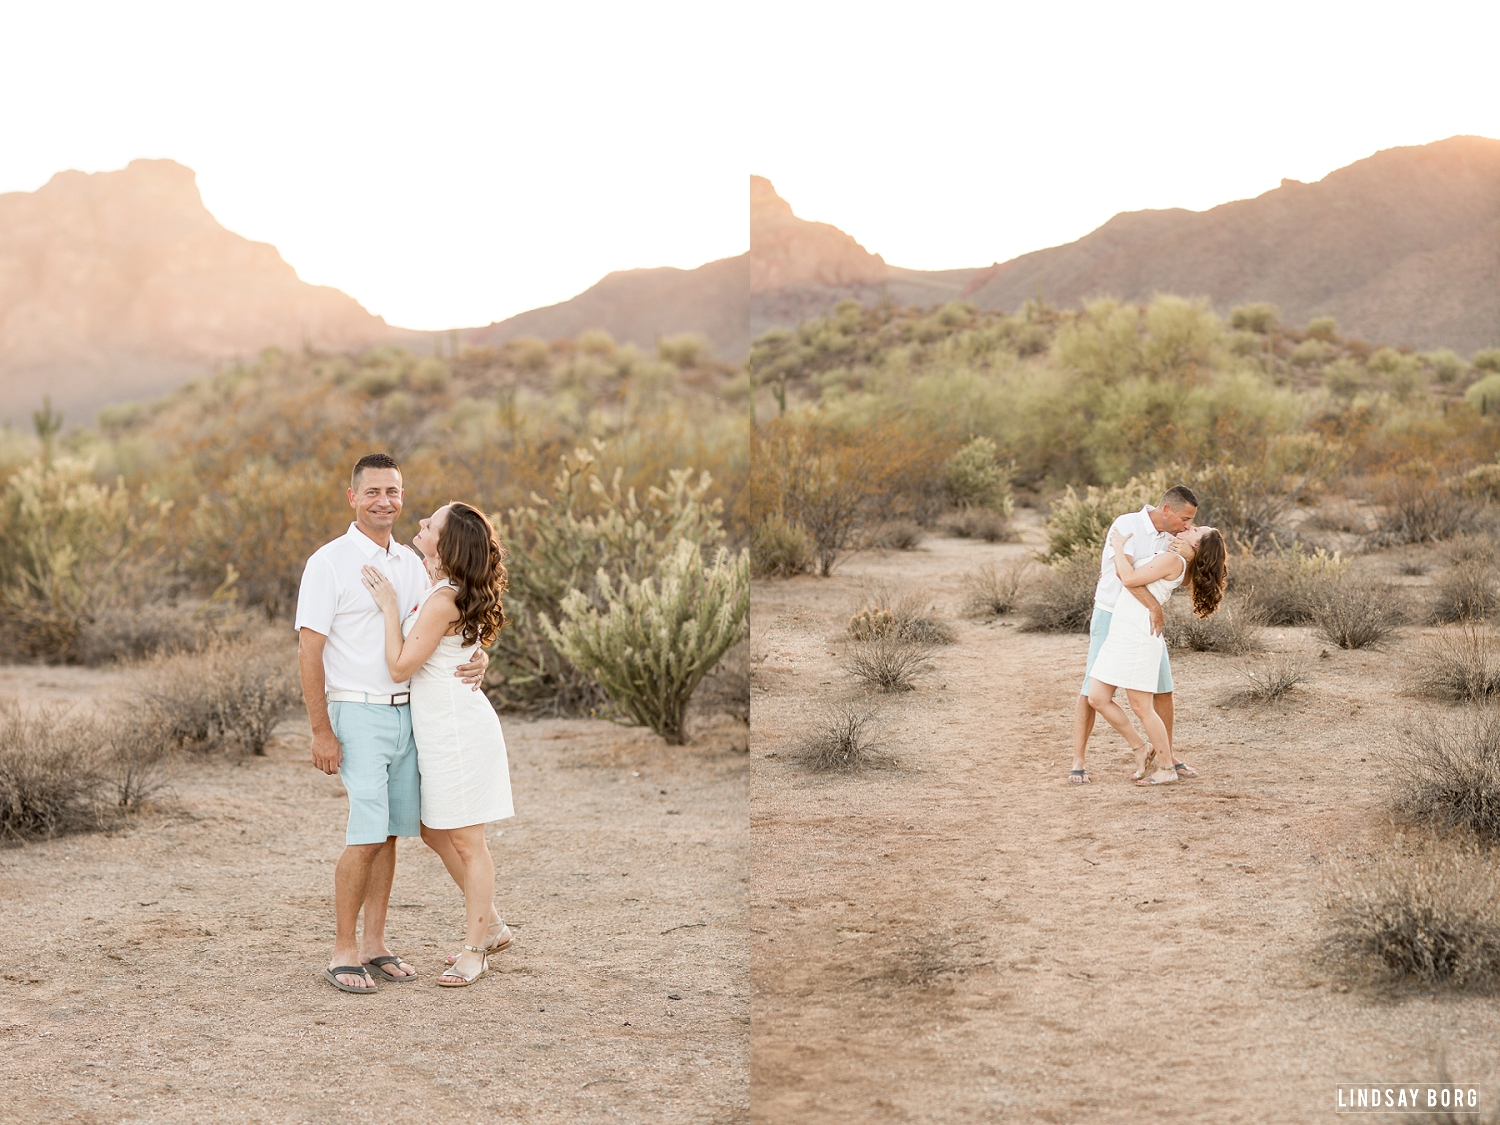 Lindsay-Borg-Photography-arizona-senior-wedding-portrait-photographer-az_4651.jpg